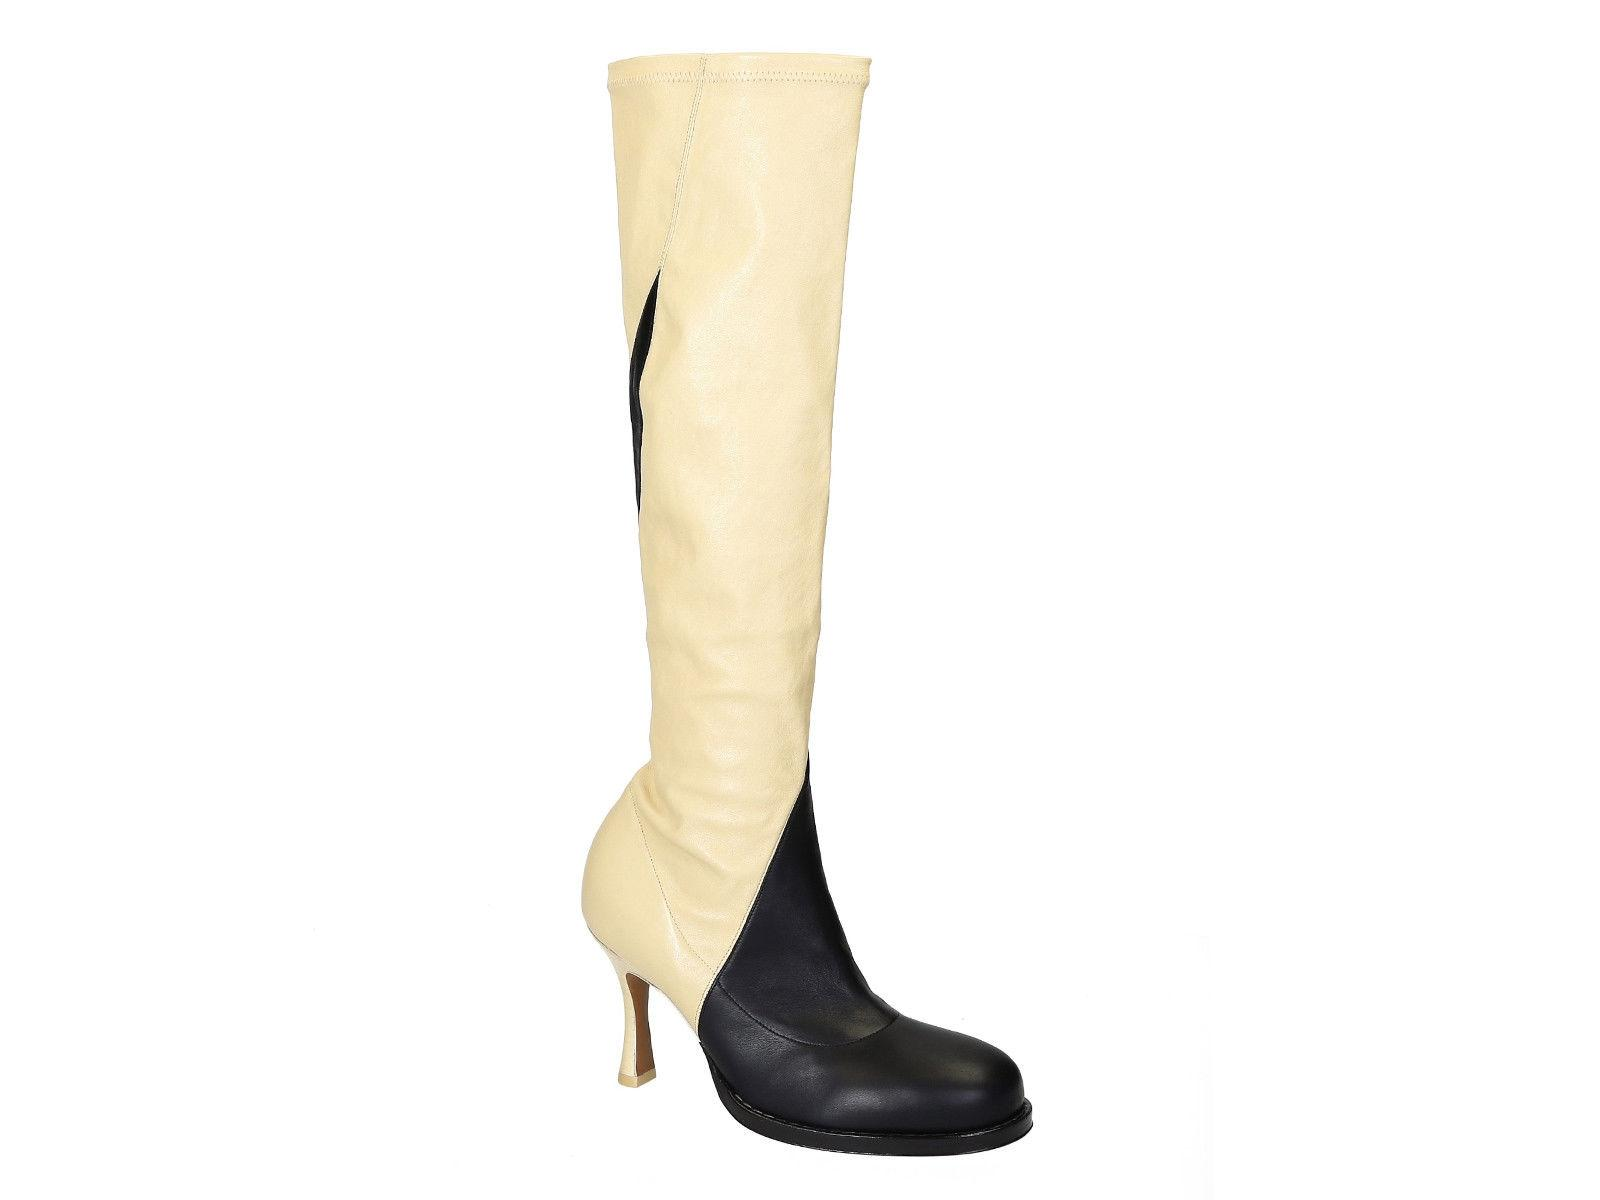 7c1741988b48 Céline Knee High Black Off White Soft Leather Boots Booties Size US US US 8  Regular (M